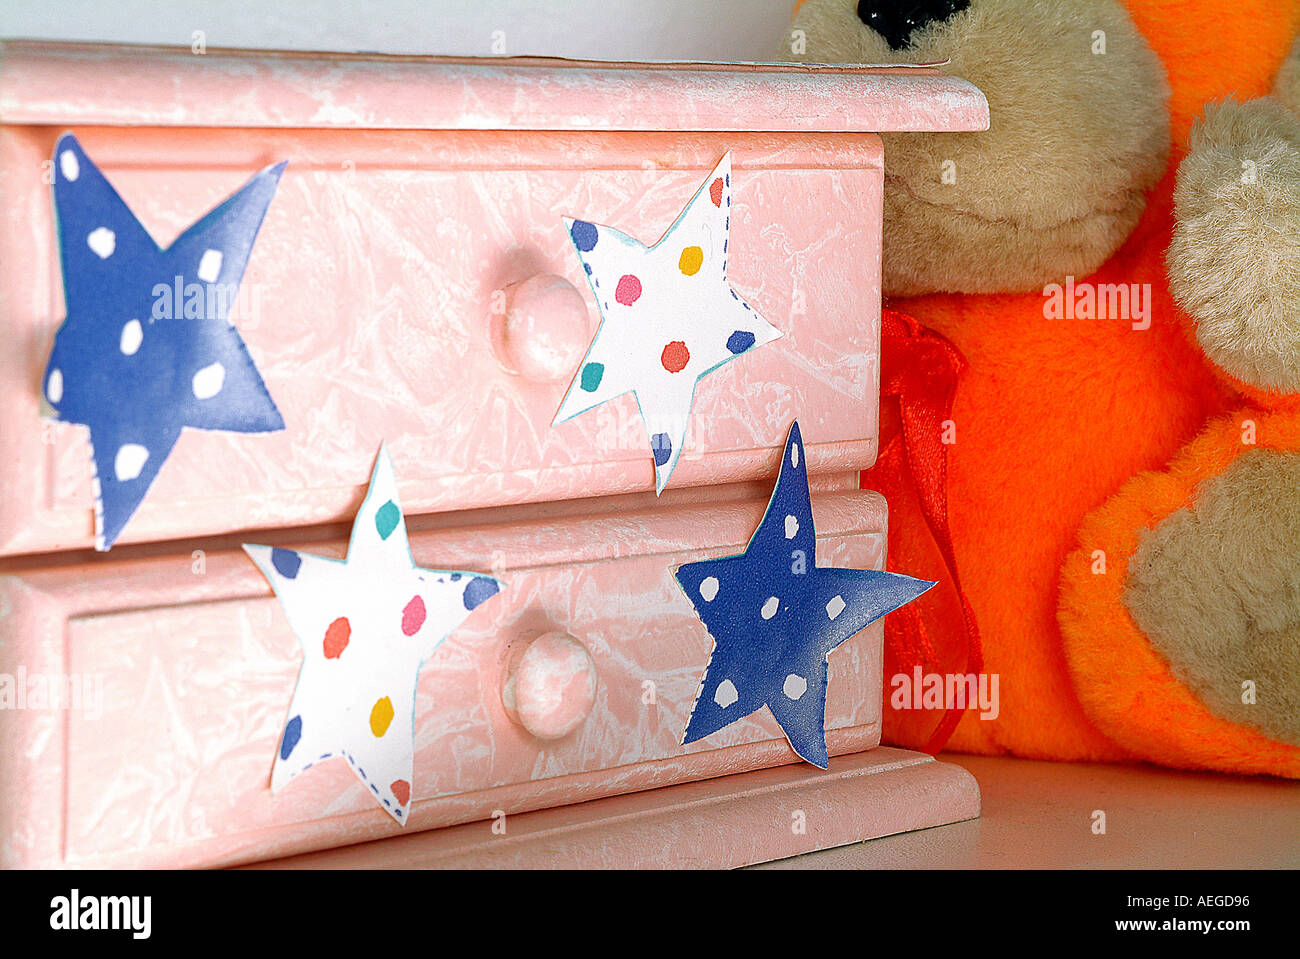 Baby s World drawers star decoration patina teddy bear child s bedroom detail nightstand miscellaneous leisure concept - Stock Image